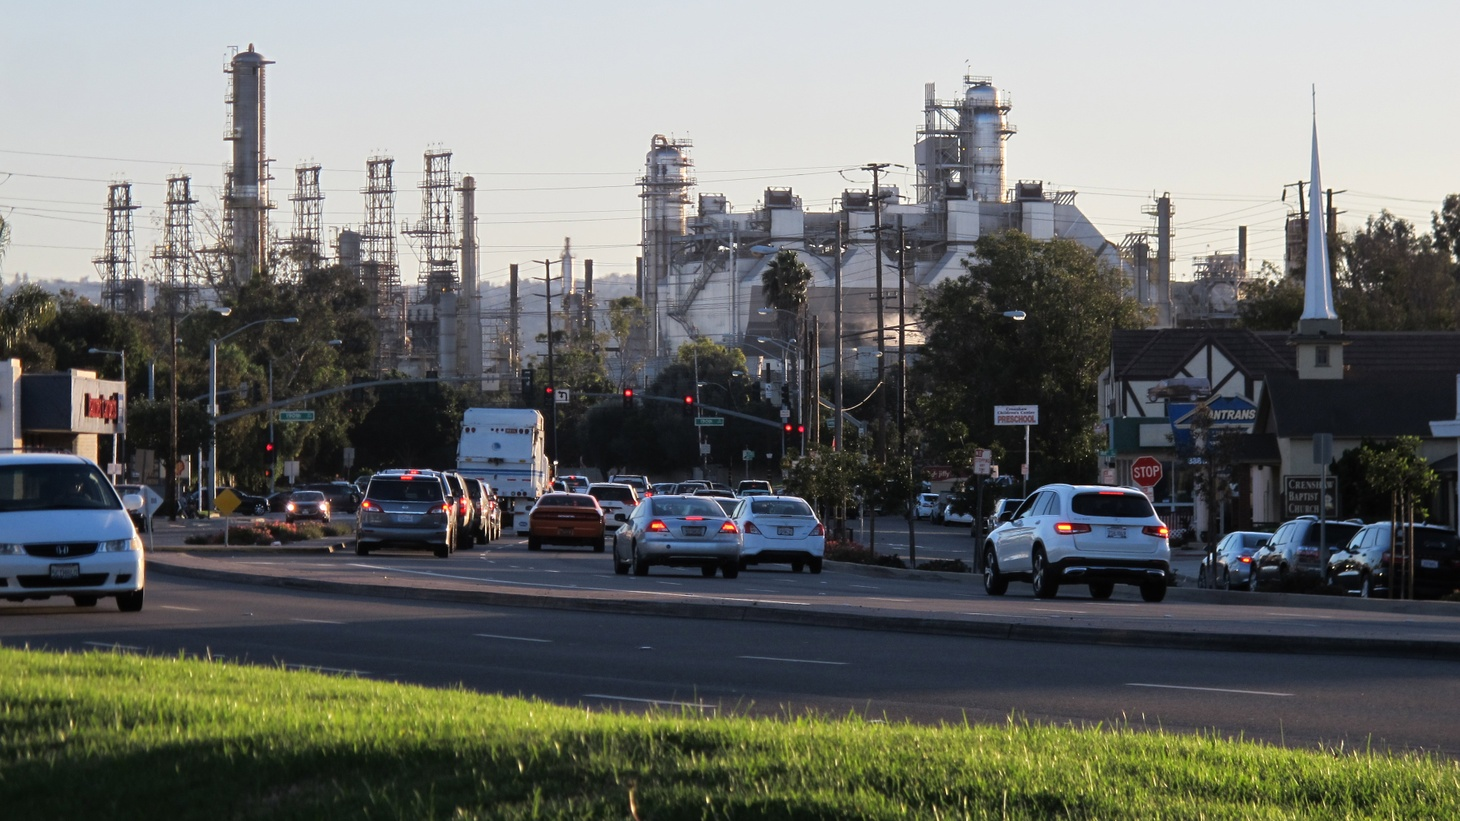 Wildfires, mass shootings, earthquakes. There's a lot to worry about in Southern California. But some residents in LA's South Bay are worried about one more kind of potential disaster, a chemical explosion at a Torrance refinery.